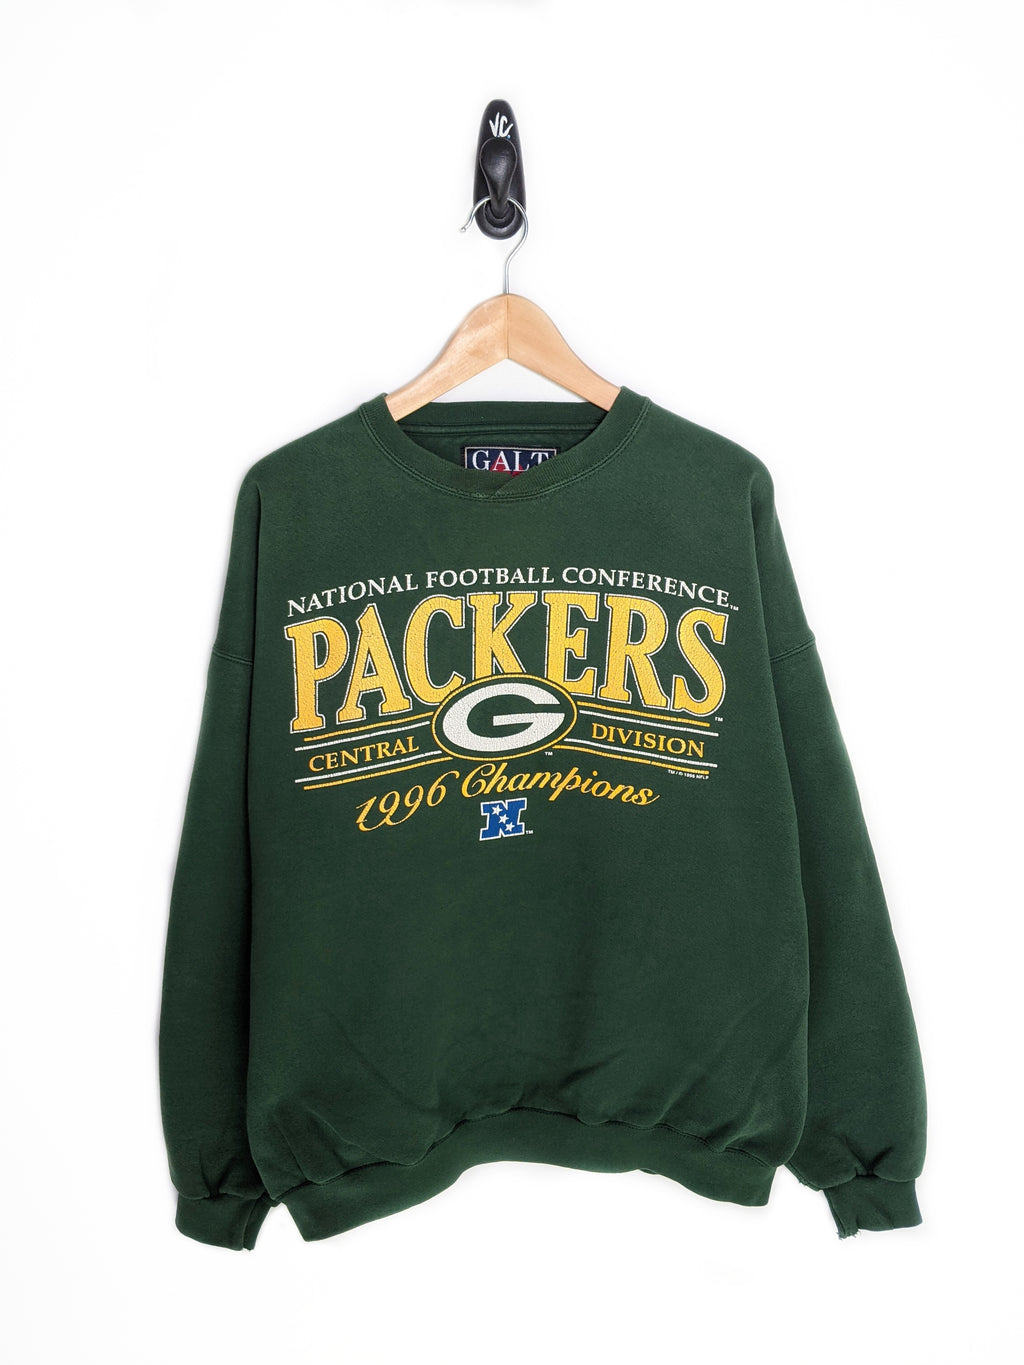 Packers Division Champs Sweatshirt (XL)